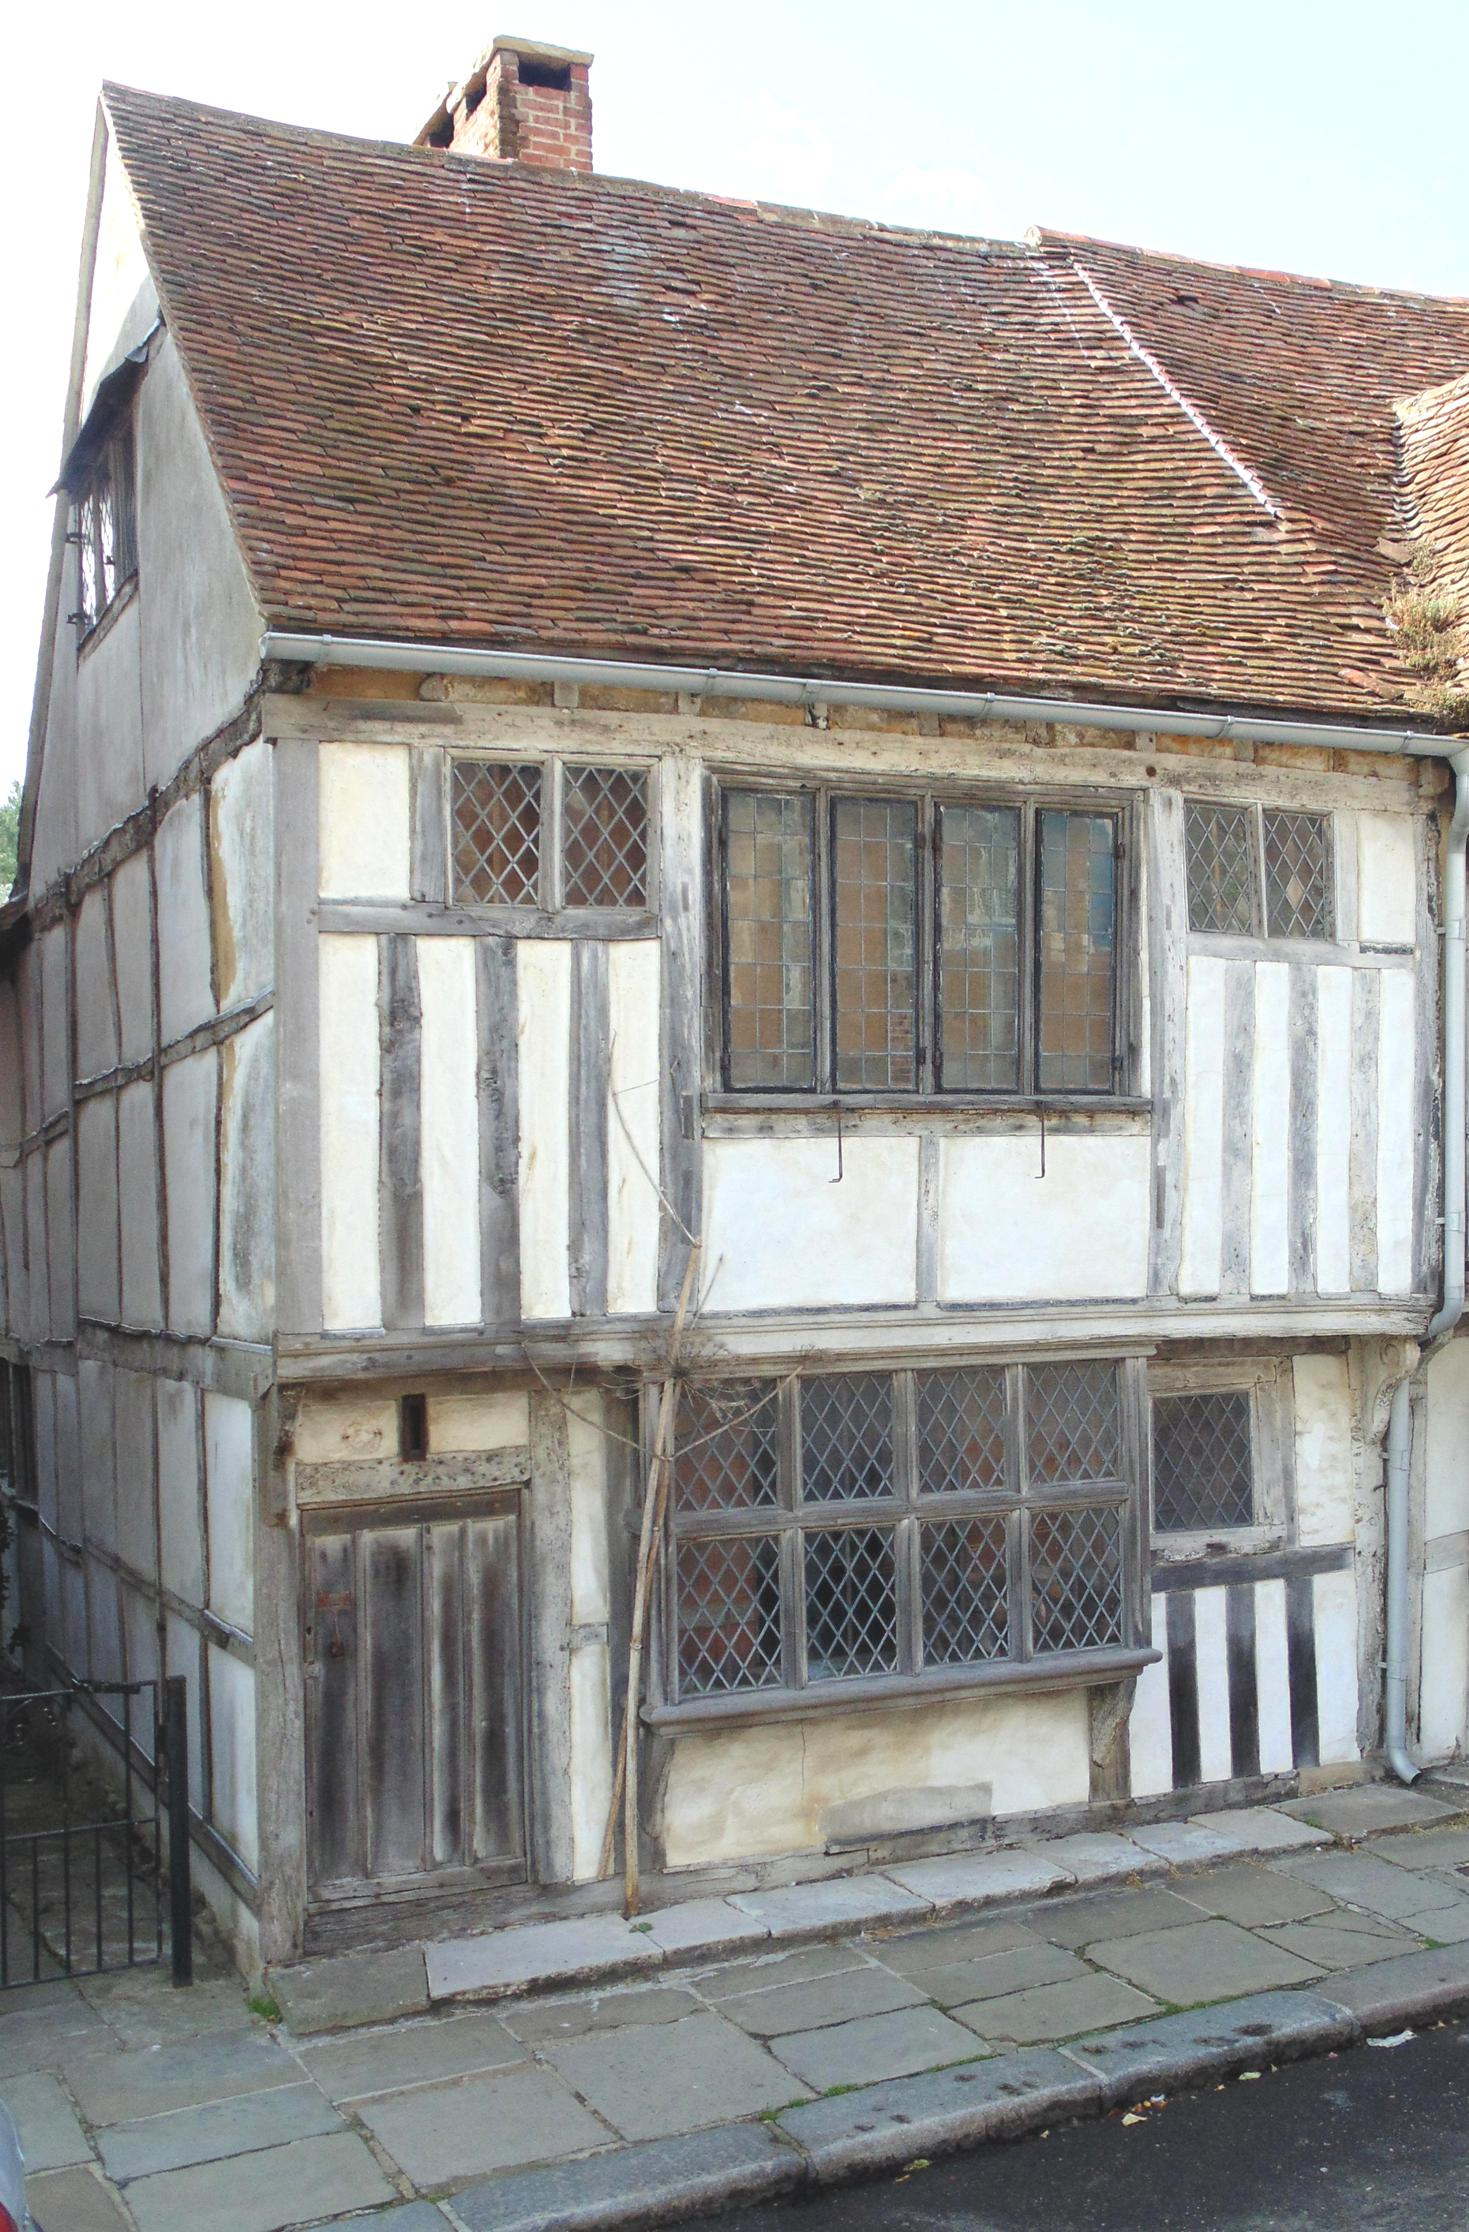 "<span class=""h3"">House and Former Mortuary.</span> Step through the wee door at 135 All Saints Street and journey back in time to another forgotten and truly magical world. This 16th century merchant's house and one of the most complete Tudor houses in Hastings Old Town, which underwent a unique and extensive restoration programme from 2006 -2011 to create the atmospheric dwelling you will see today.  The owner, Alastair Hendy, has taken it back to how it may have looked when first built, carrying out major structural repairs throughout, meticulously restoring every surface and internal fixture - yet reinventing the dust of history. Also emphatically autobiographical, the house challenges the conventions of the traditional restoration make-over and Tudor interior, and looks beyond each room's constraints and into its more conceptual and imaginative possibilities.  This magical house lit by candle light, along with its secret garden filled with giant plants, is an experience like no other. Come and step into the pages of a Grimm's Fairytale – you'll be amazed.   <span class=""h3"">Old Town Mortuary</span> The house has some secrets of its own, for up until the 1950s the rear wing was used as an undertaker's workshop, cadavers being stored in the adjoining cellar room. Two elderly Hastings fisherman have recently recounted their memories about when as boys they would come to The Wilderness (as the area behind upper All Saints Street was known then) and peer through the back windows of the house to spot the bodies laid out, then run away. Entry: £3 per adult, £2 per child (under 16). Donation to Old Hastings Preservation Society.  www.aghendy.com"